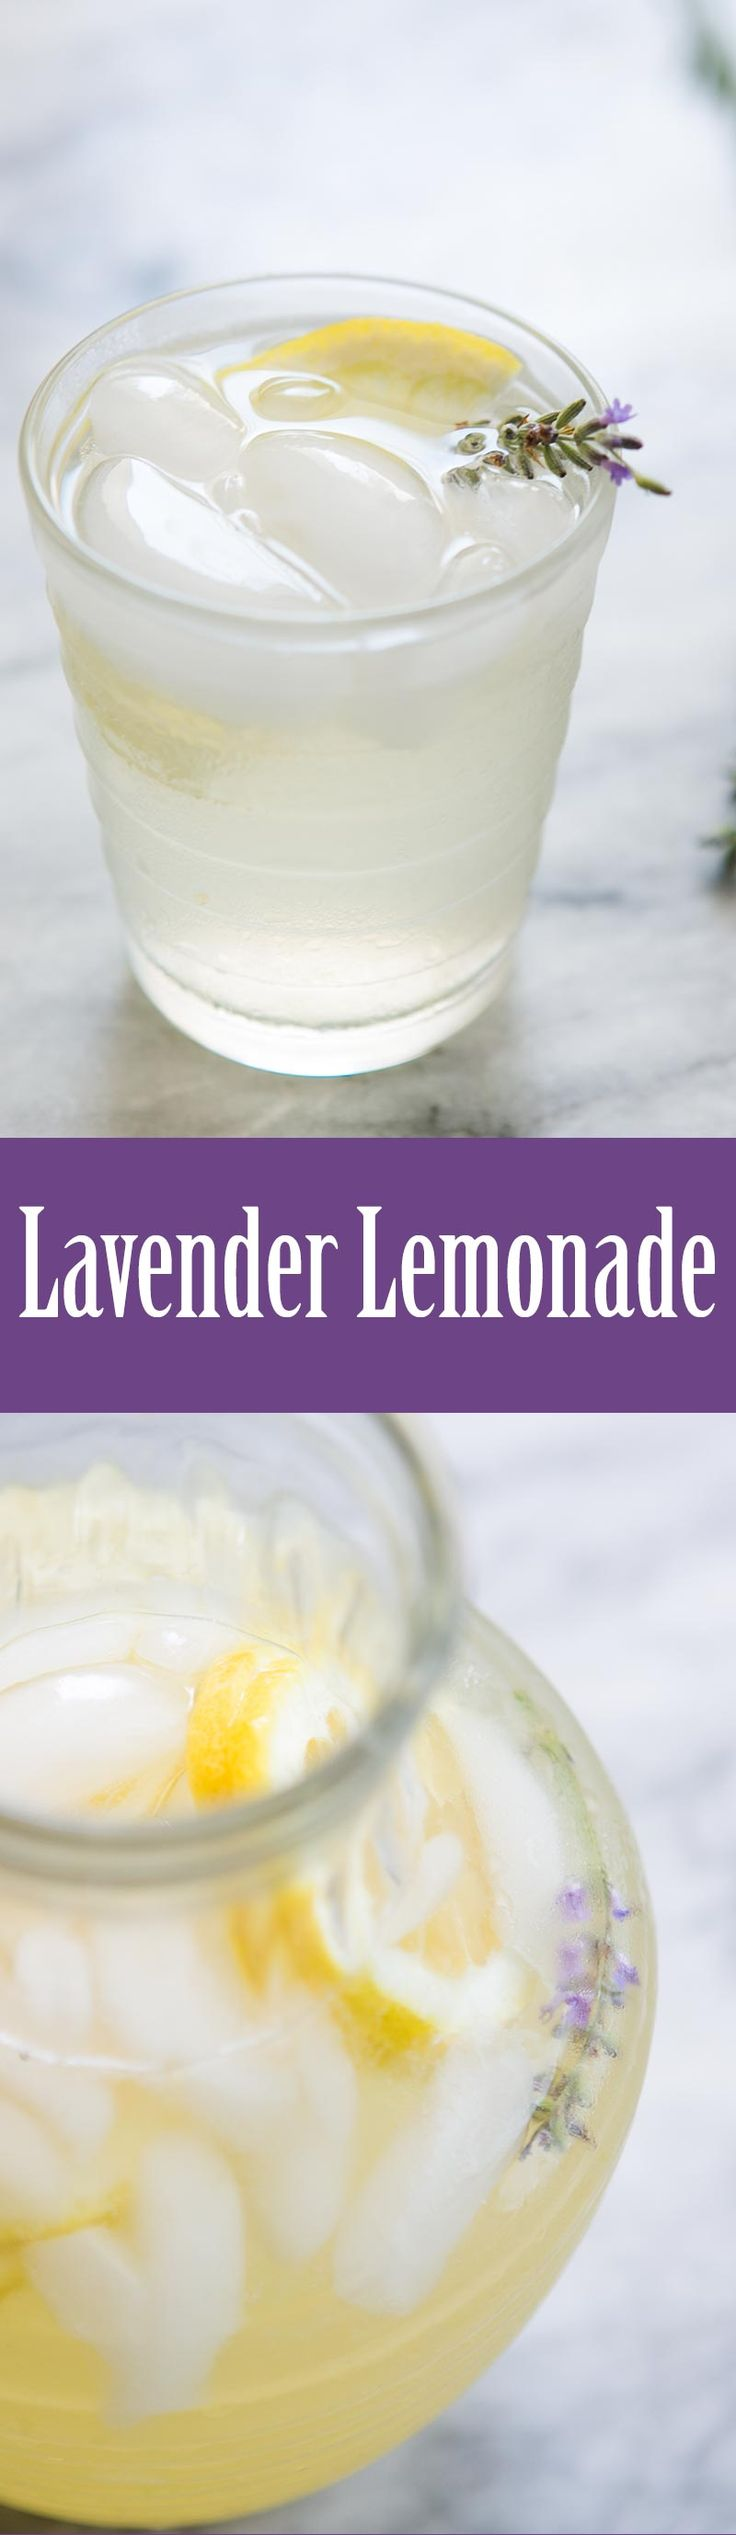 Homemade lemonade infused with lavender! Such a refreshing floral twist on lemonade.